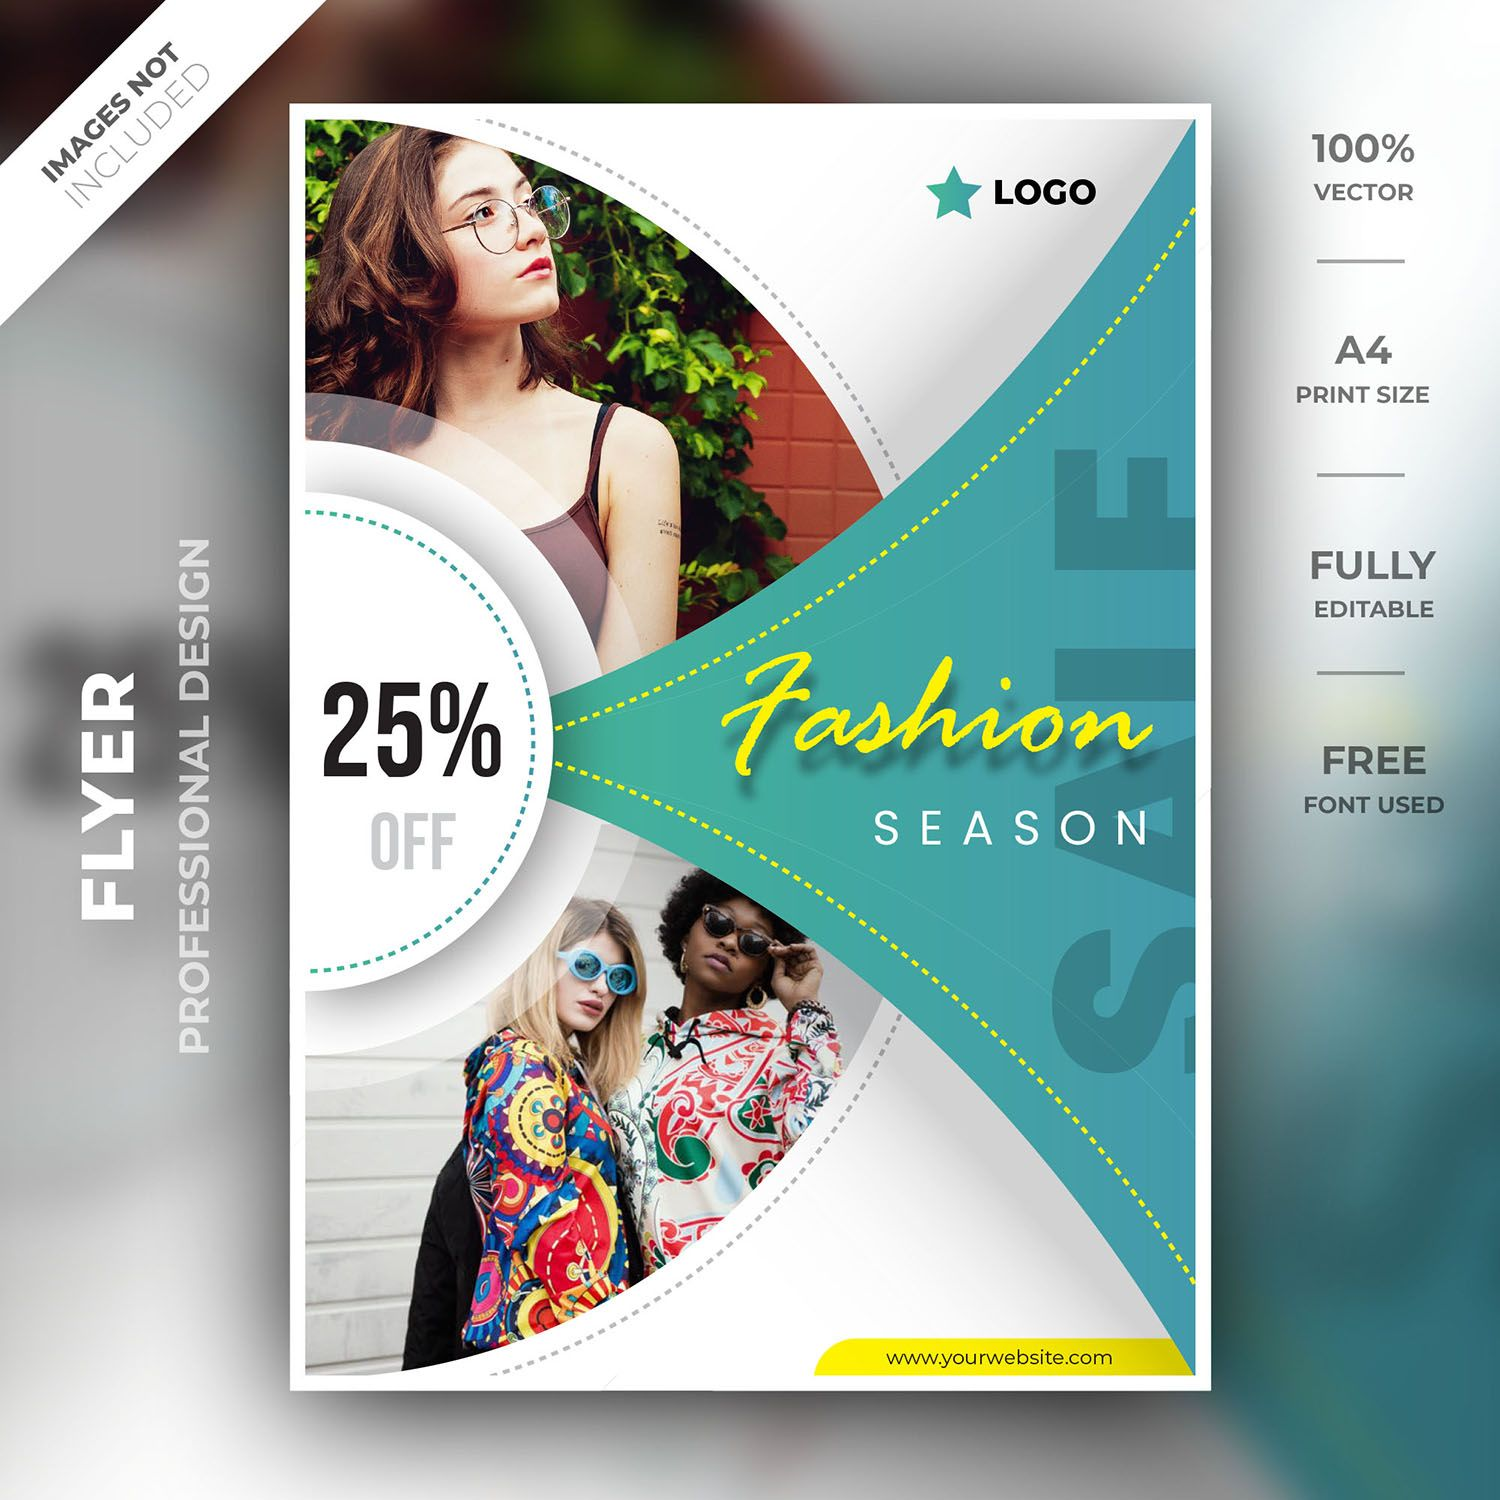 This Fashion Season Flyer Template Design Created By Professional Designer The Elegant Fashion Design Is In 2020 Brochure Design Template Flyer Design Flyer Template